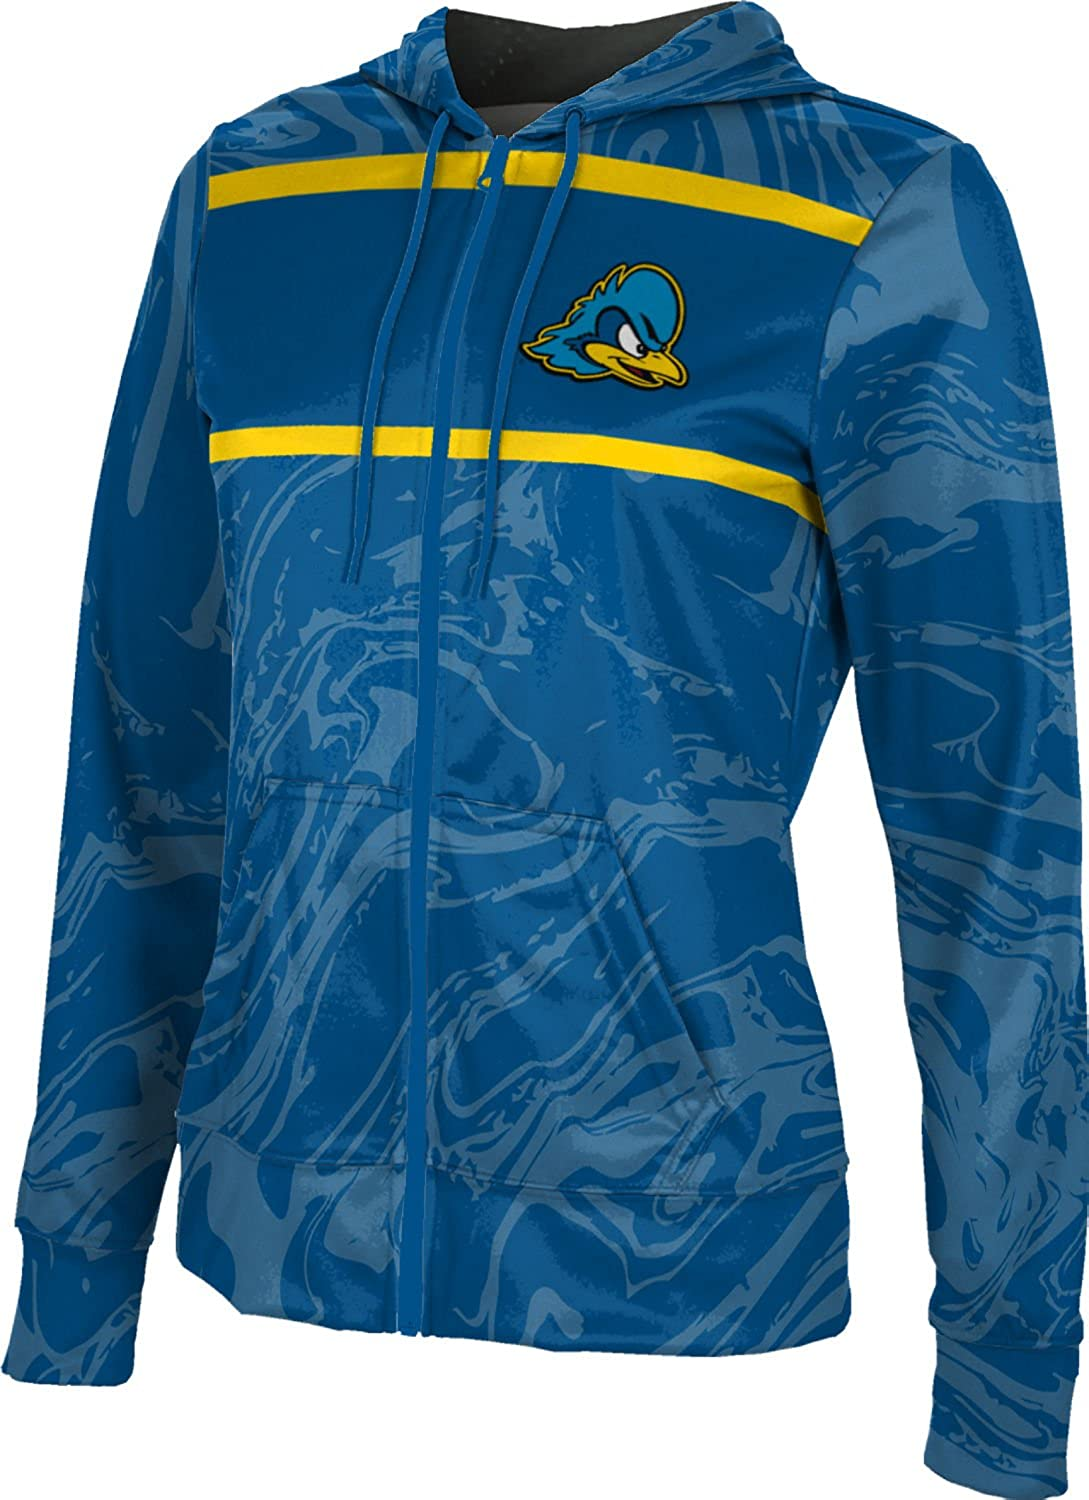 School Spirit Sweatshirt Ripple ProSphere University of Delaware Girls Zipper Hoodie